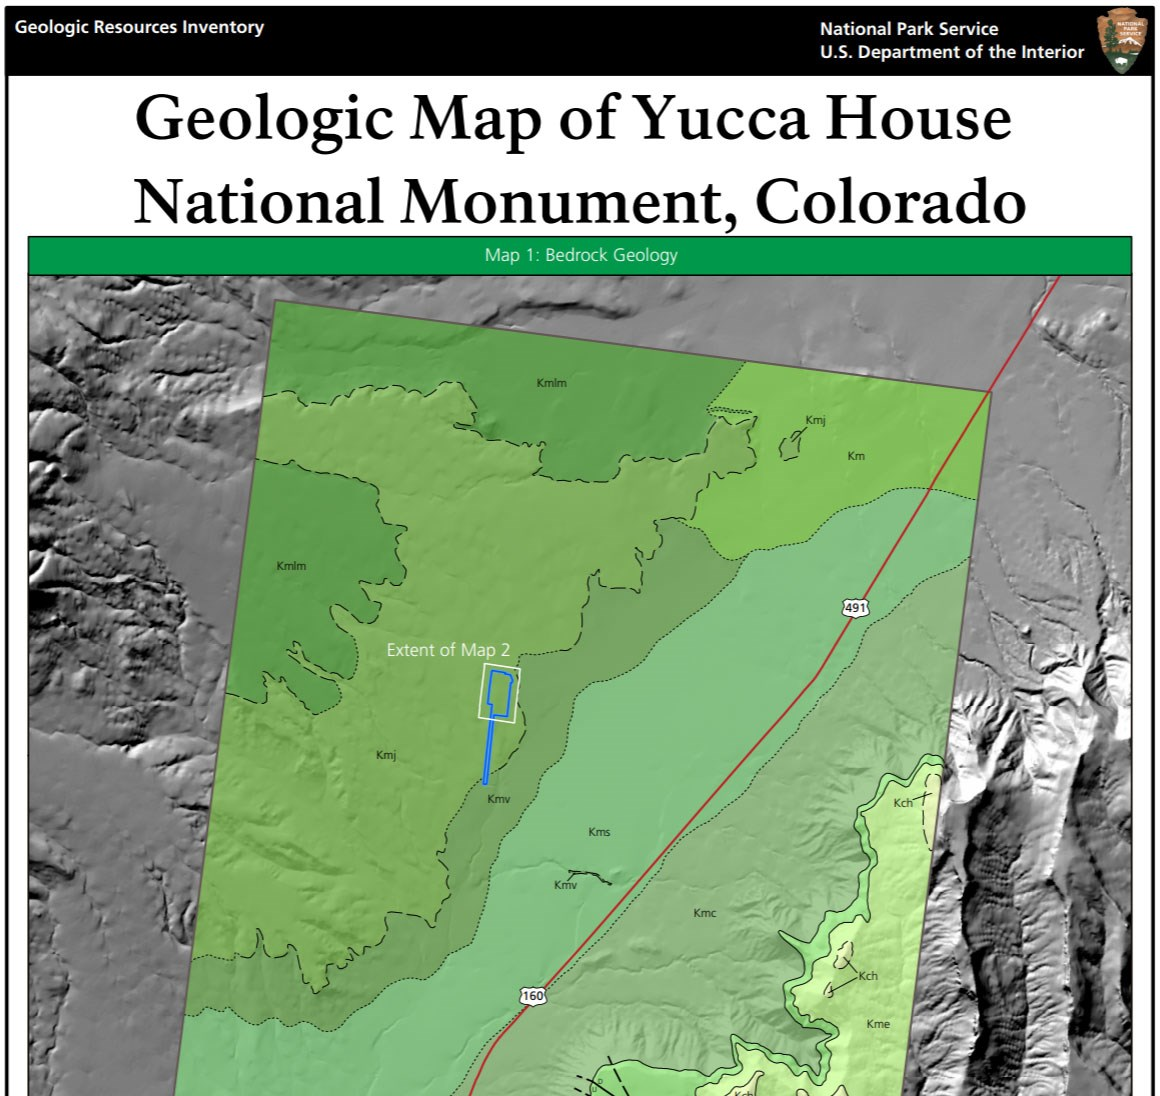 image of yucca house gri geologic map